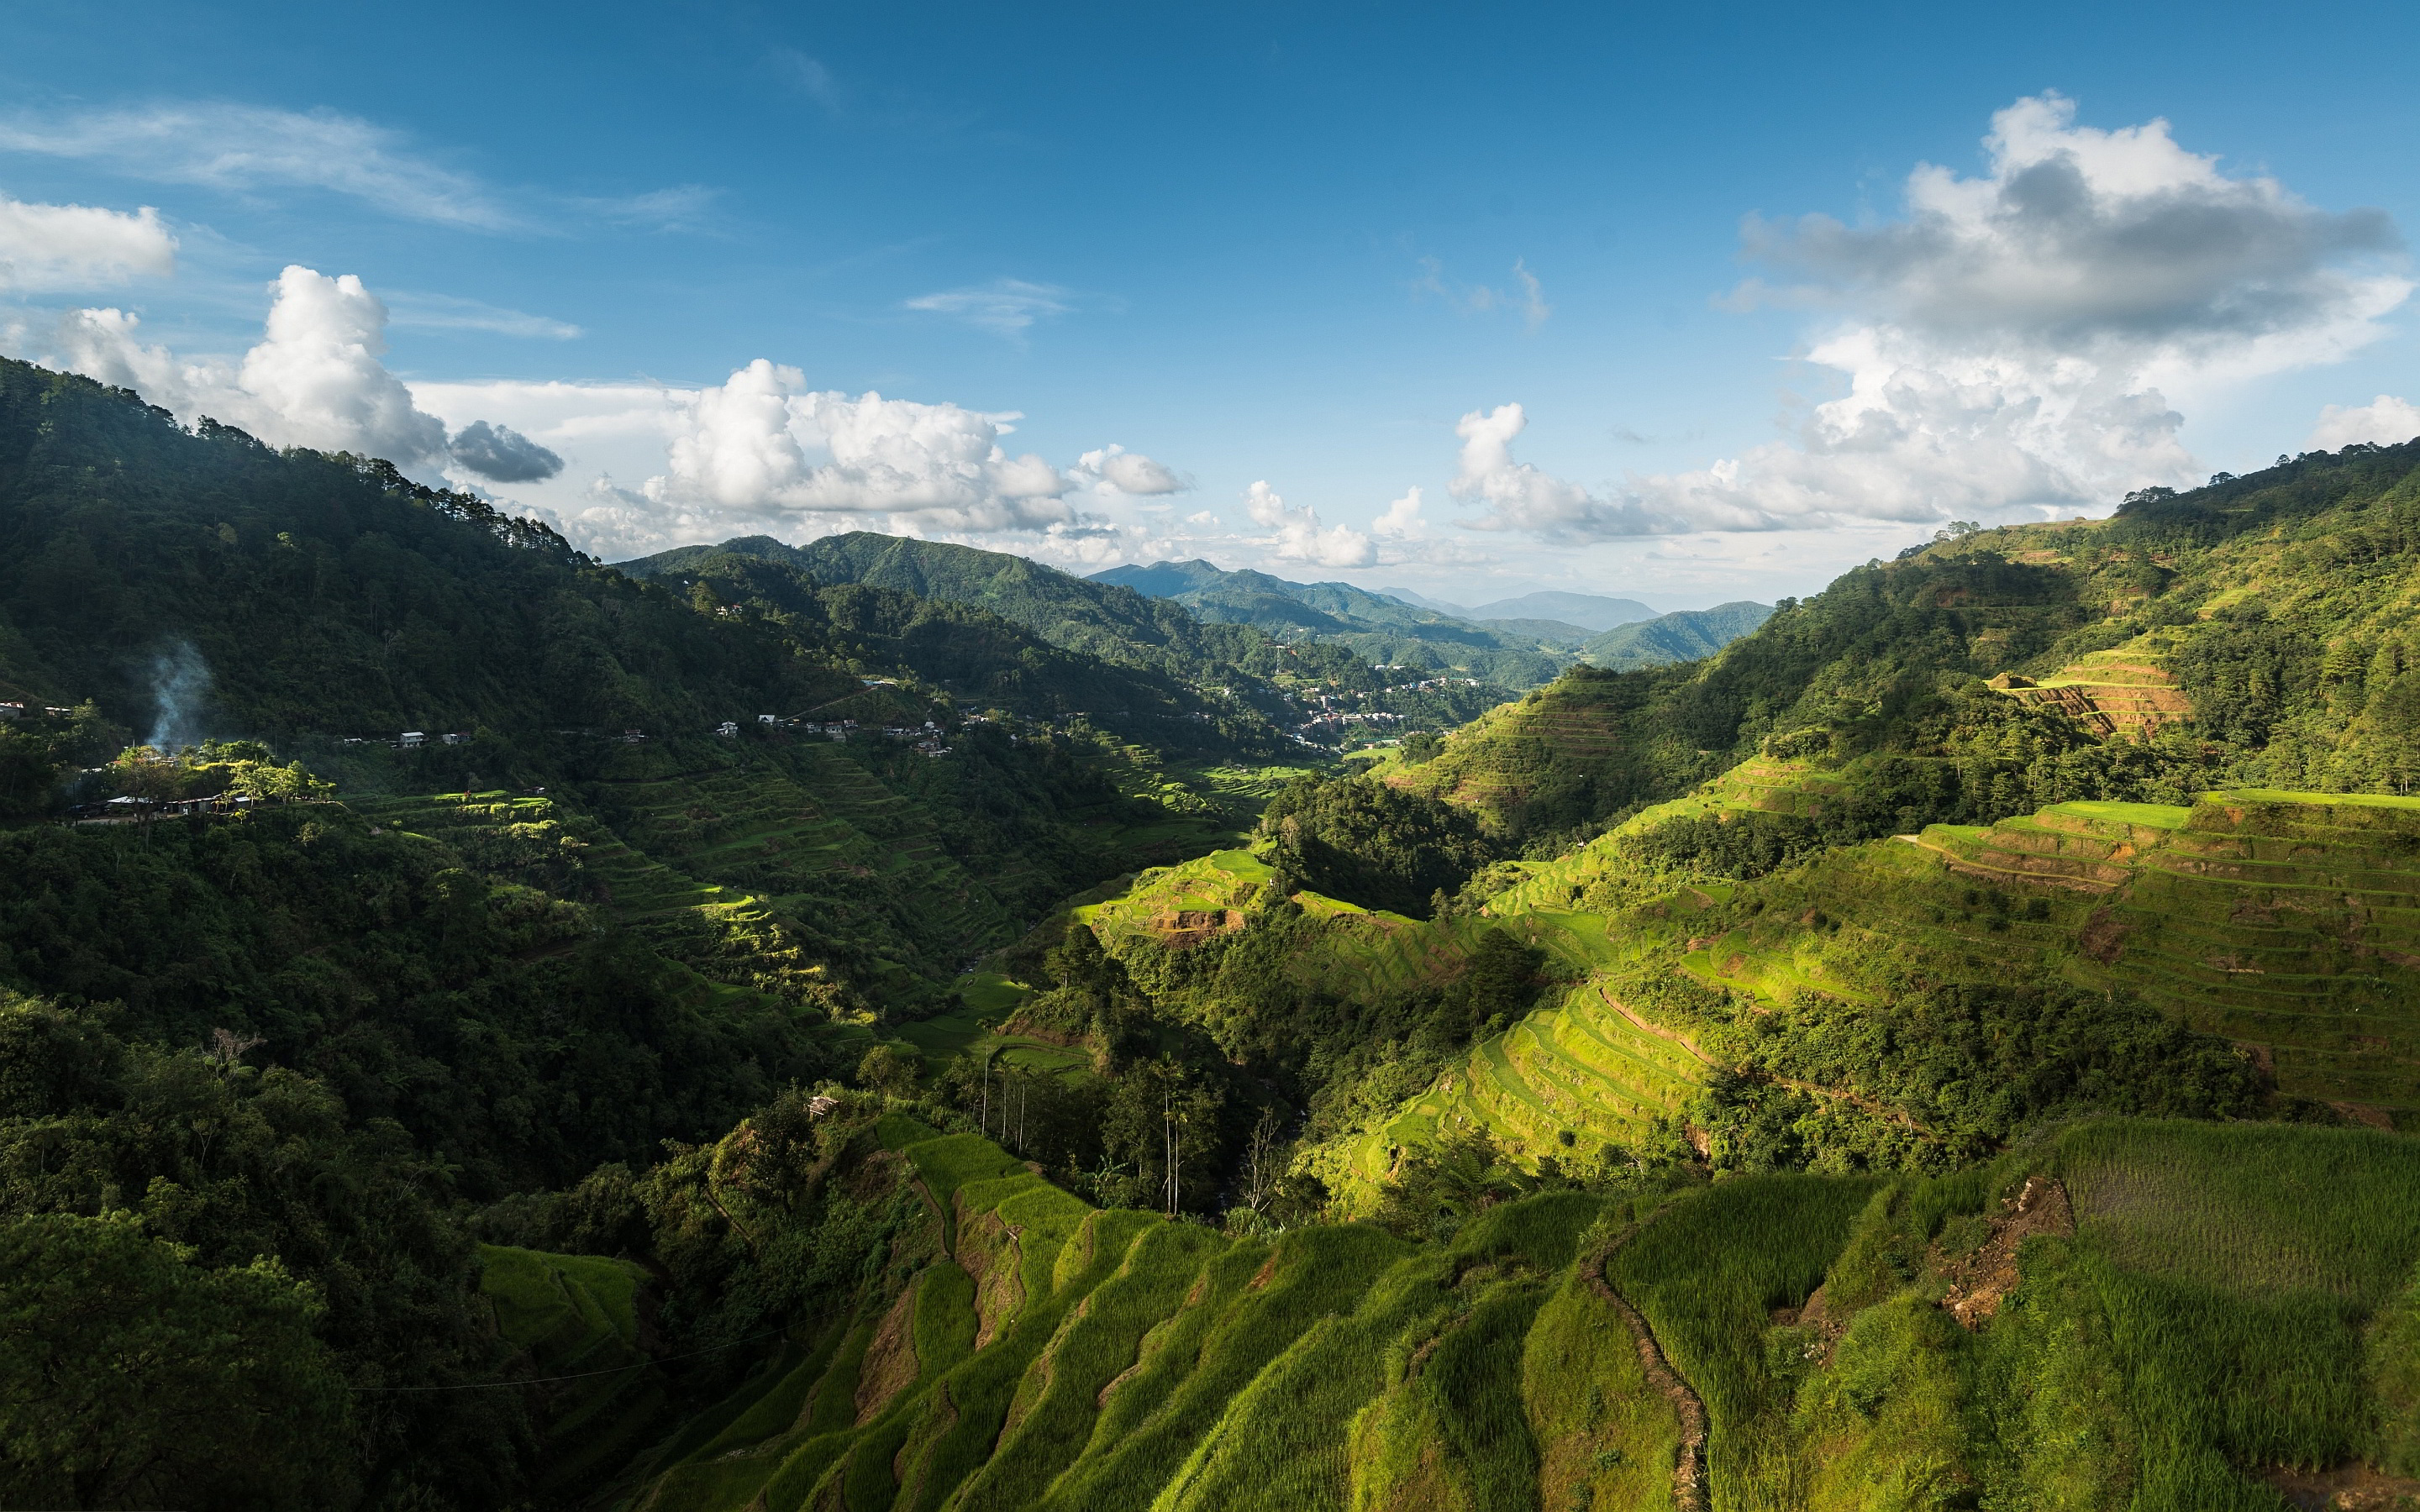 philippines countryside hd